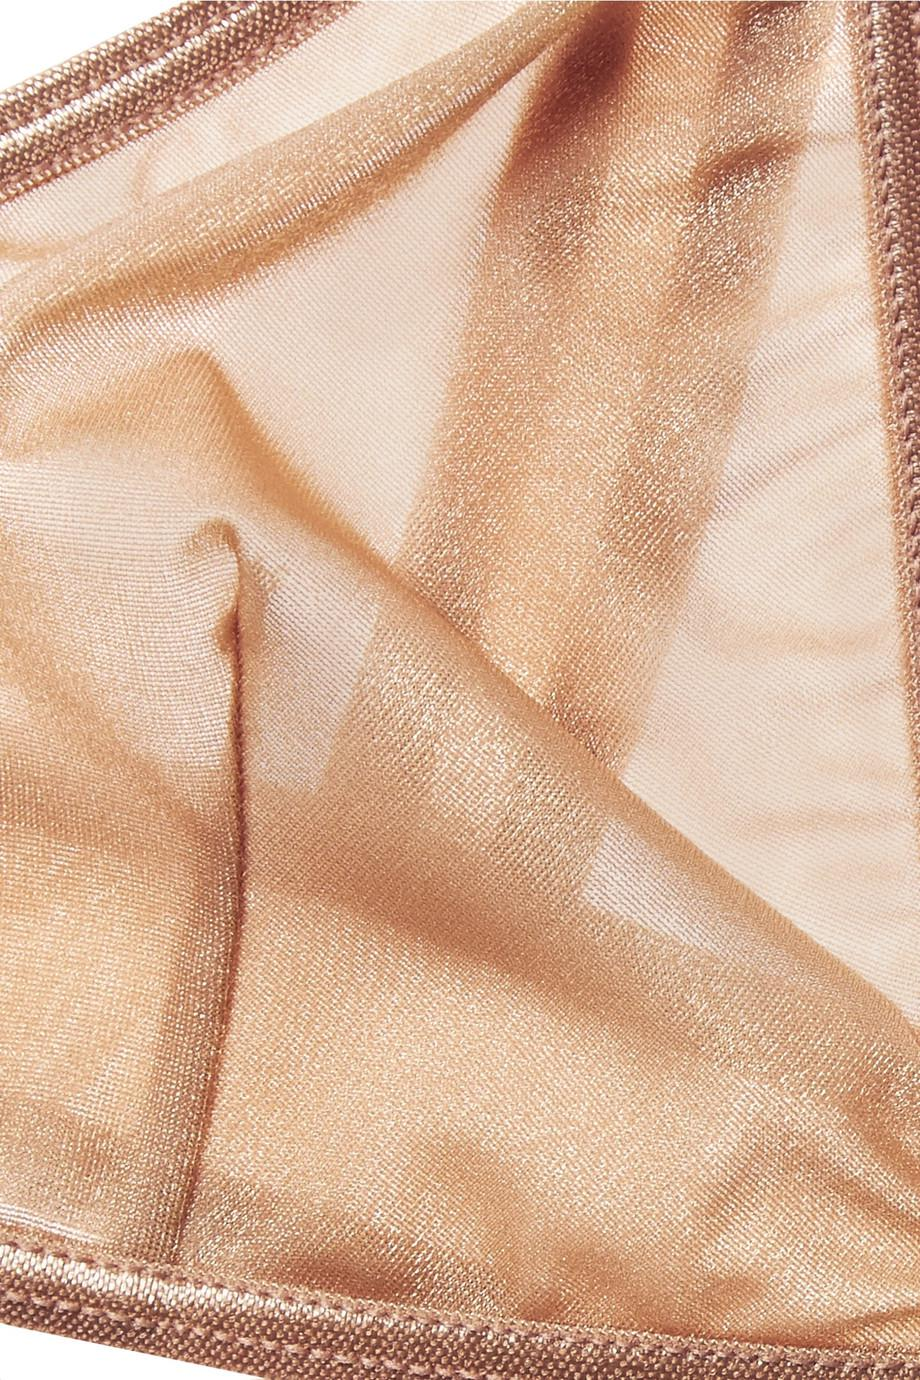 Minnesota Metallic Stretch-mesh Soft-cup Triangle Bra - Sand BASERANGE Low Price Cheap Online Buy Cheap Explore Free Shipping Explore Visit New With Mastercard Cheap Price xYuedY90